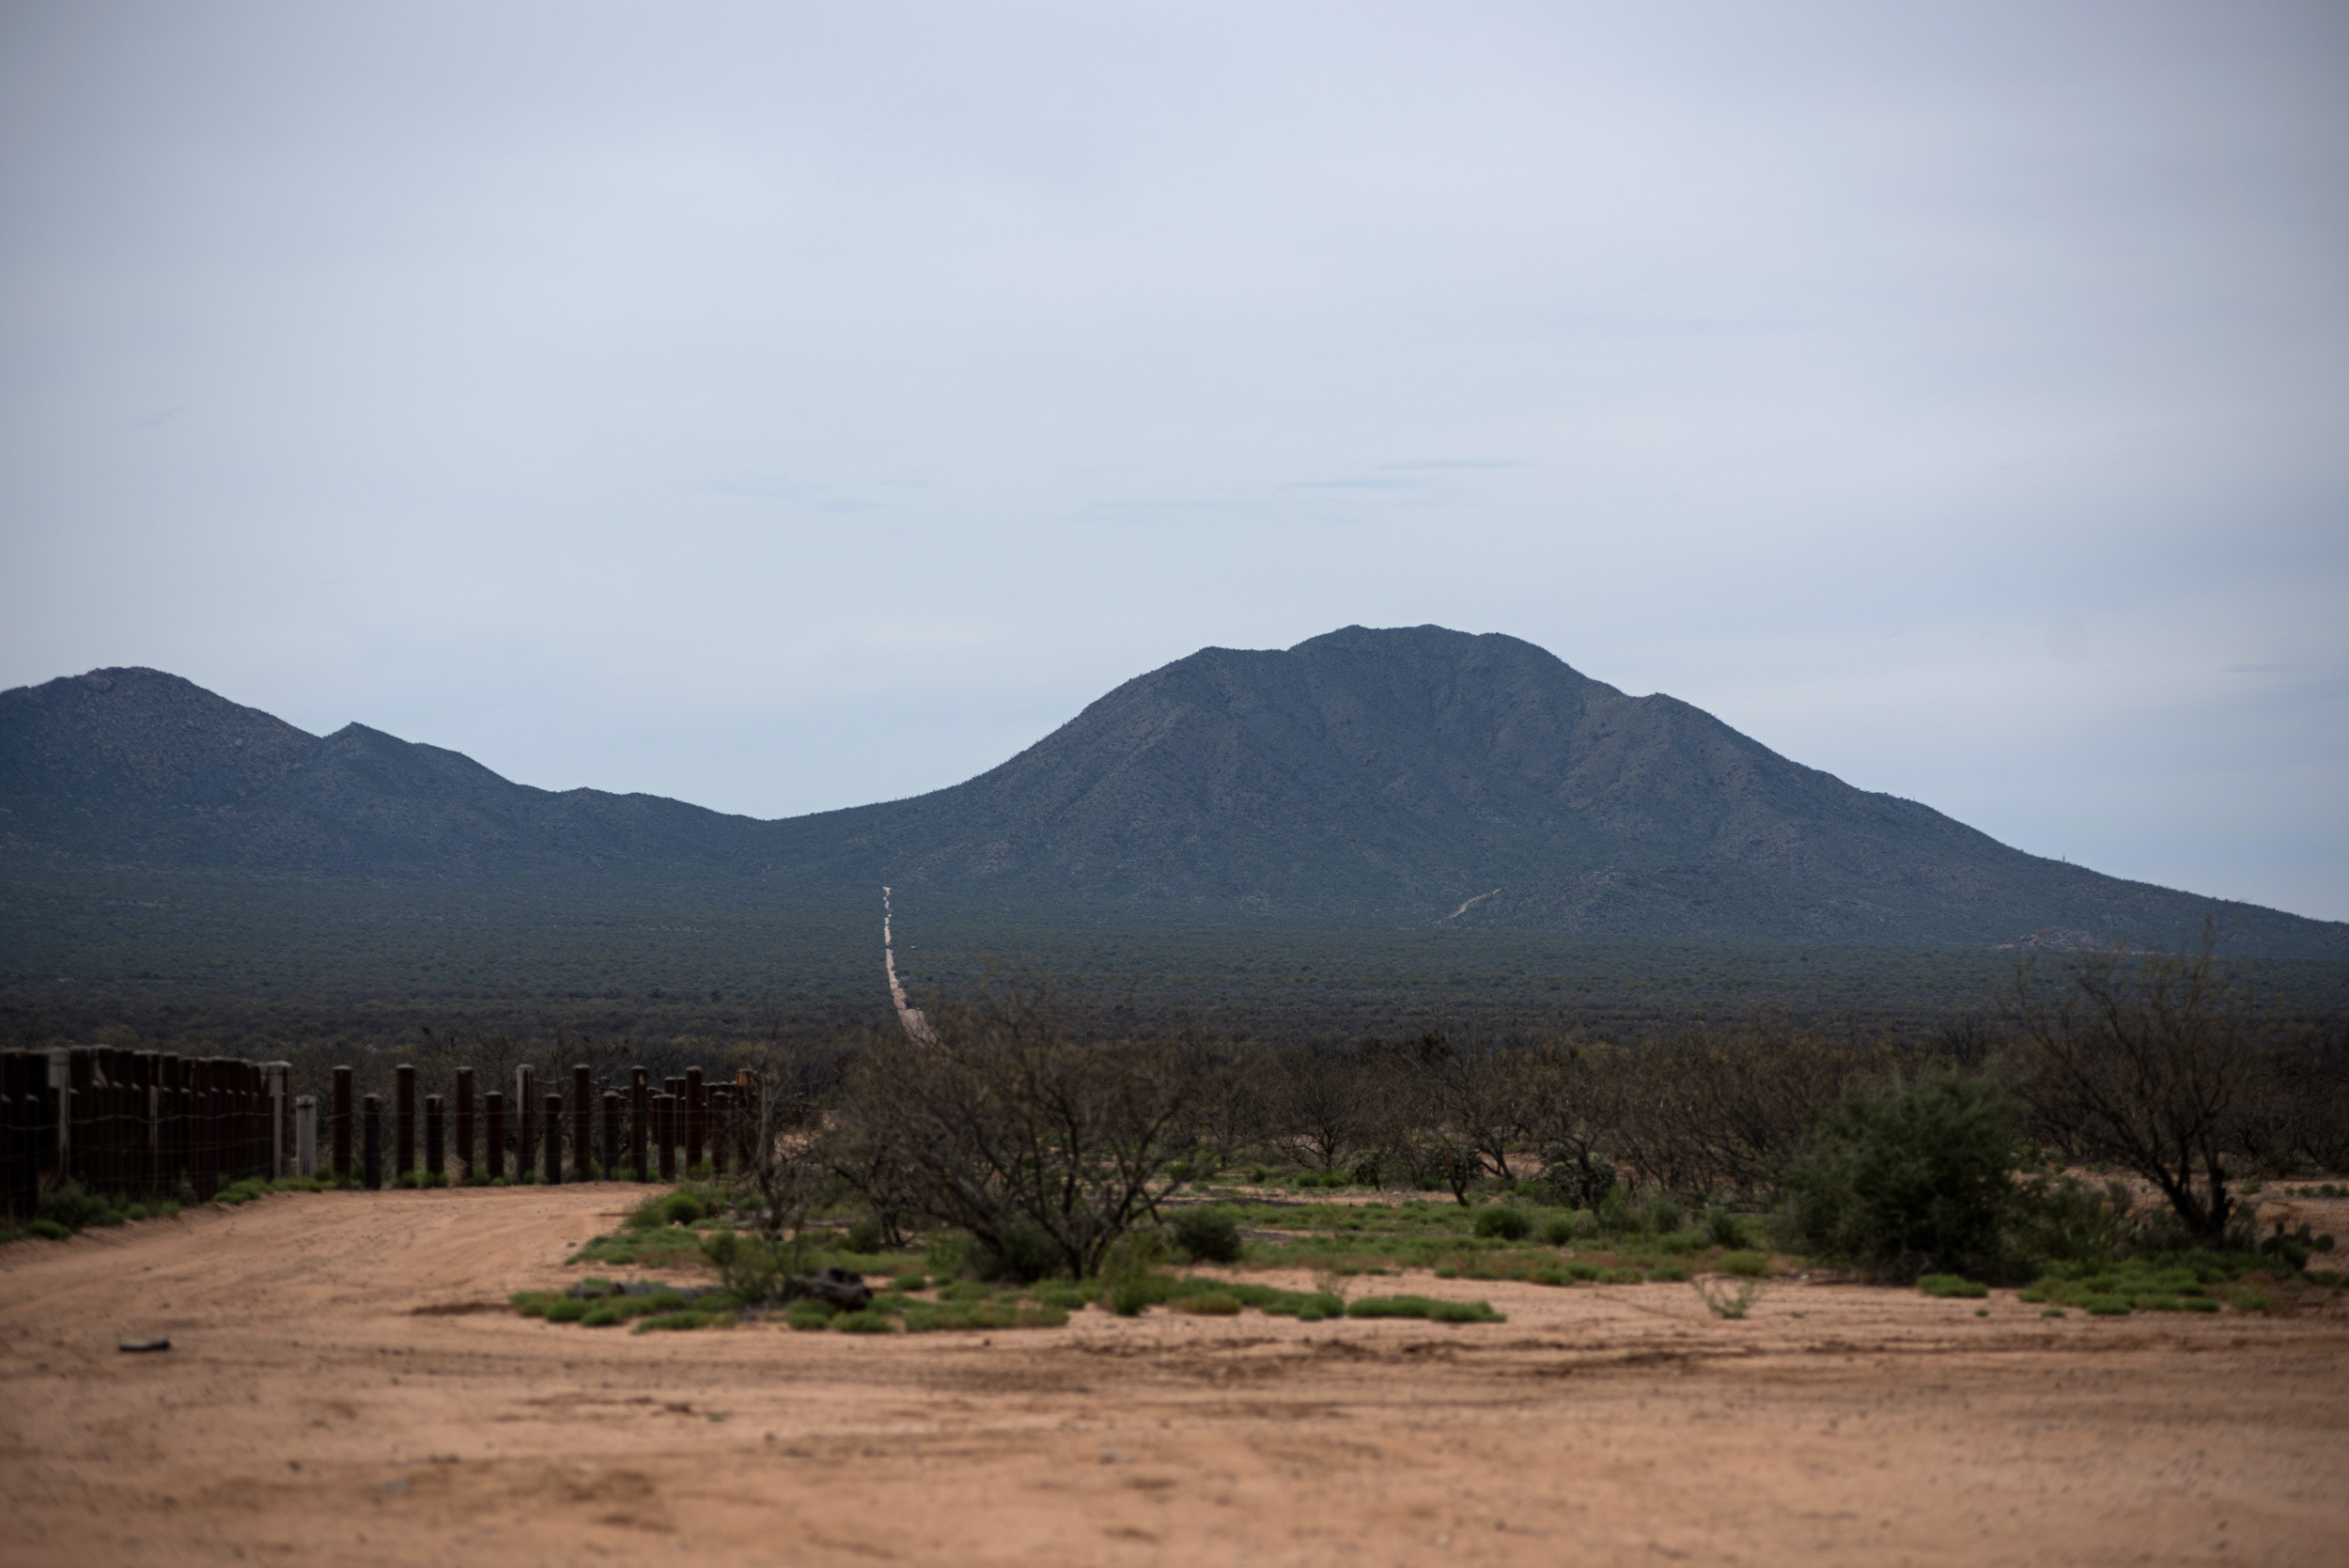 Sells, Ariz. March 27, 2019: Small anti-vehicle bollards trace the US border that bisects the Tohono O'odham nation just south of Sells, Ariz. on Wednesday March 27, 2019. (Ash Ponders for The Intercept)